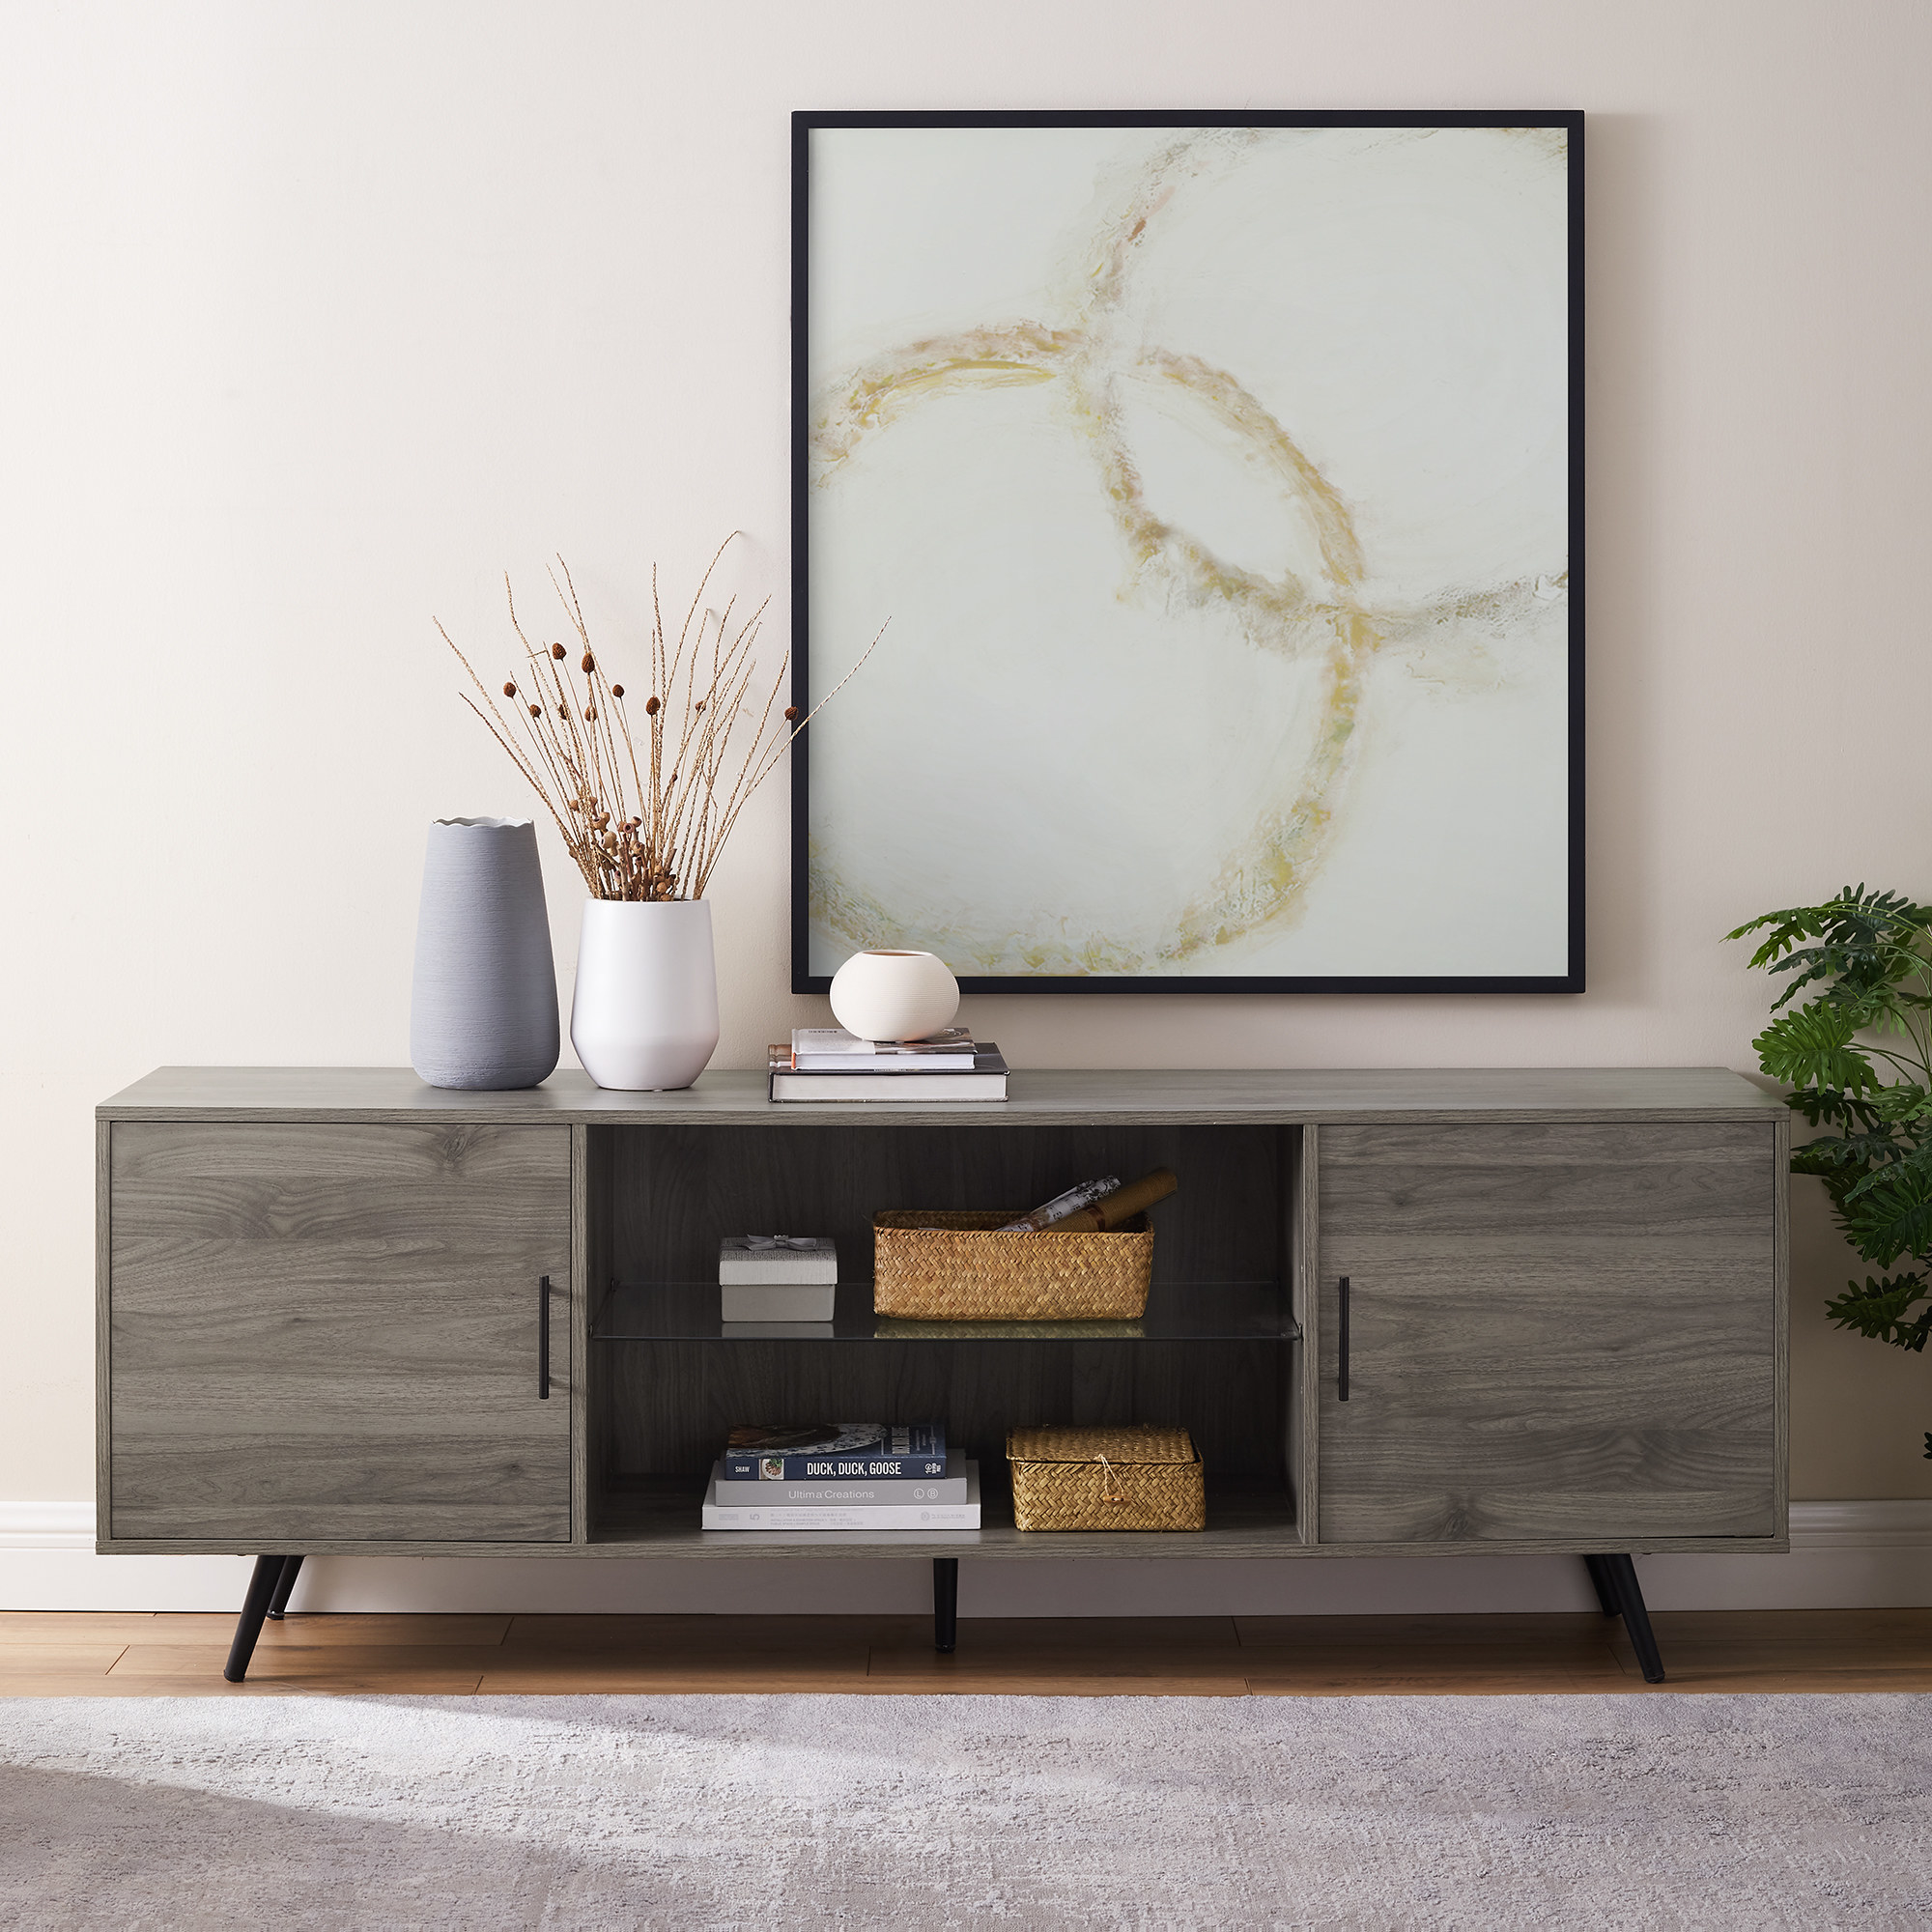 a light brown mid century modern tv stand with two cabinets on each end and a shelf in the middle